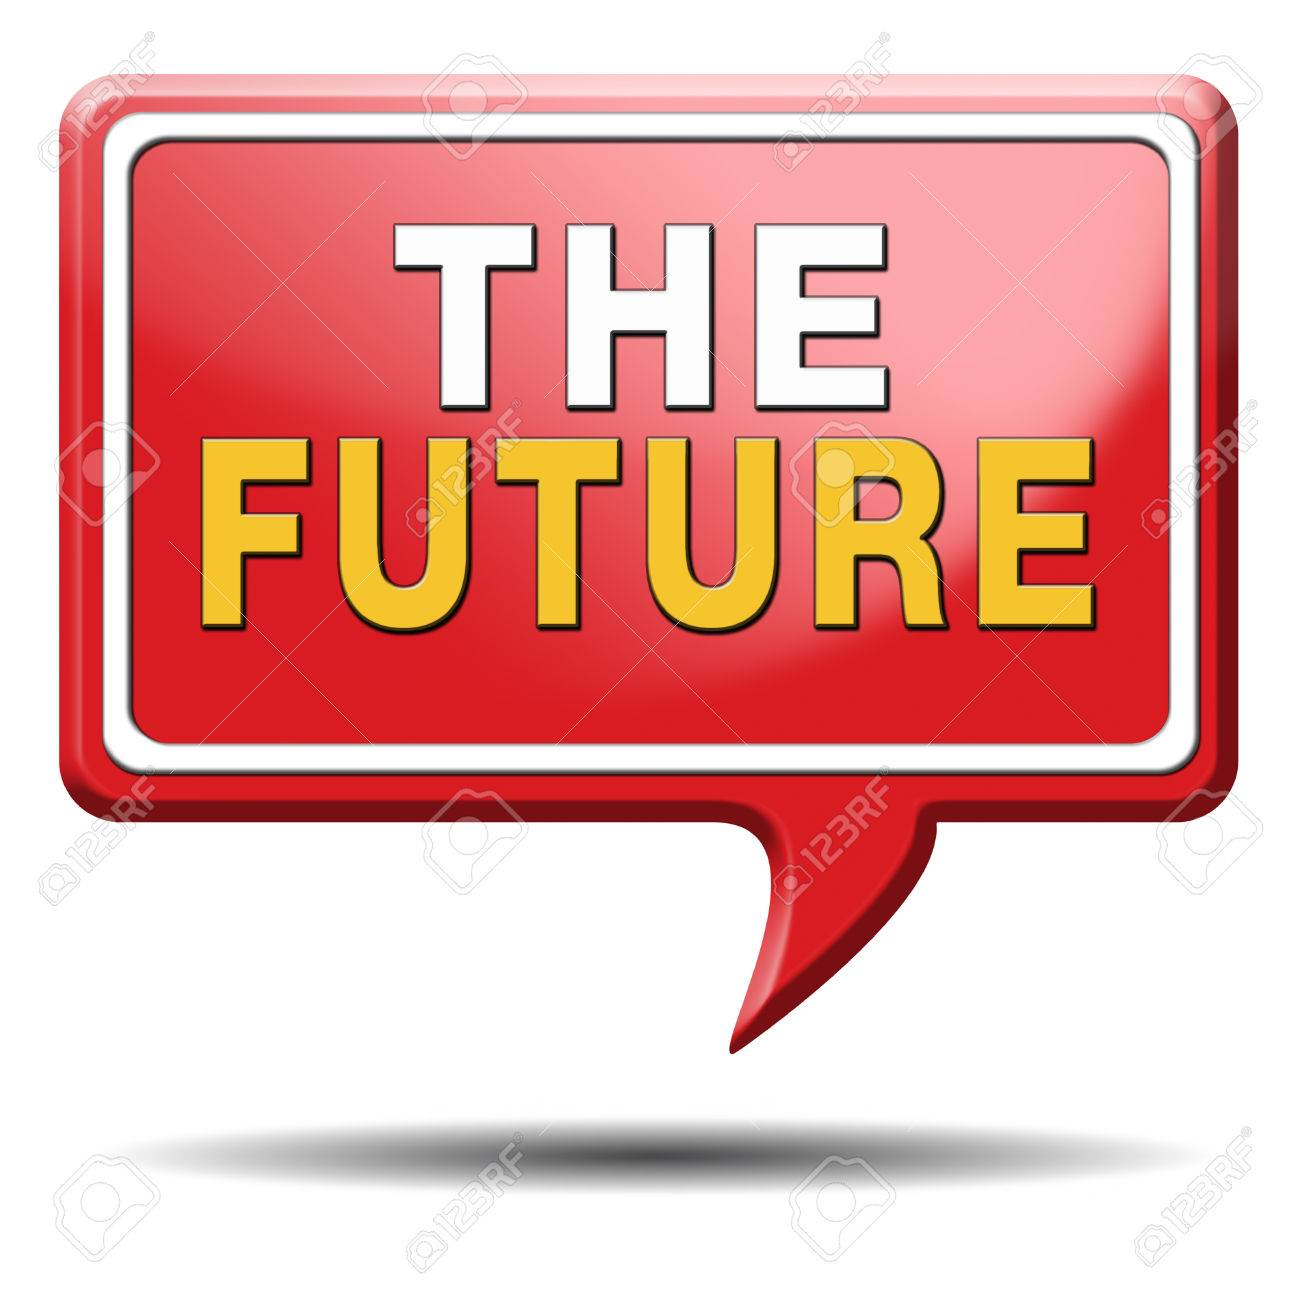 bright future ahead planning a happy future having a good plan button icon with text and word concept Stock Photo - 23101220